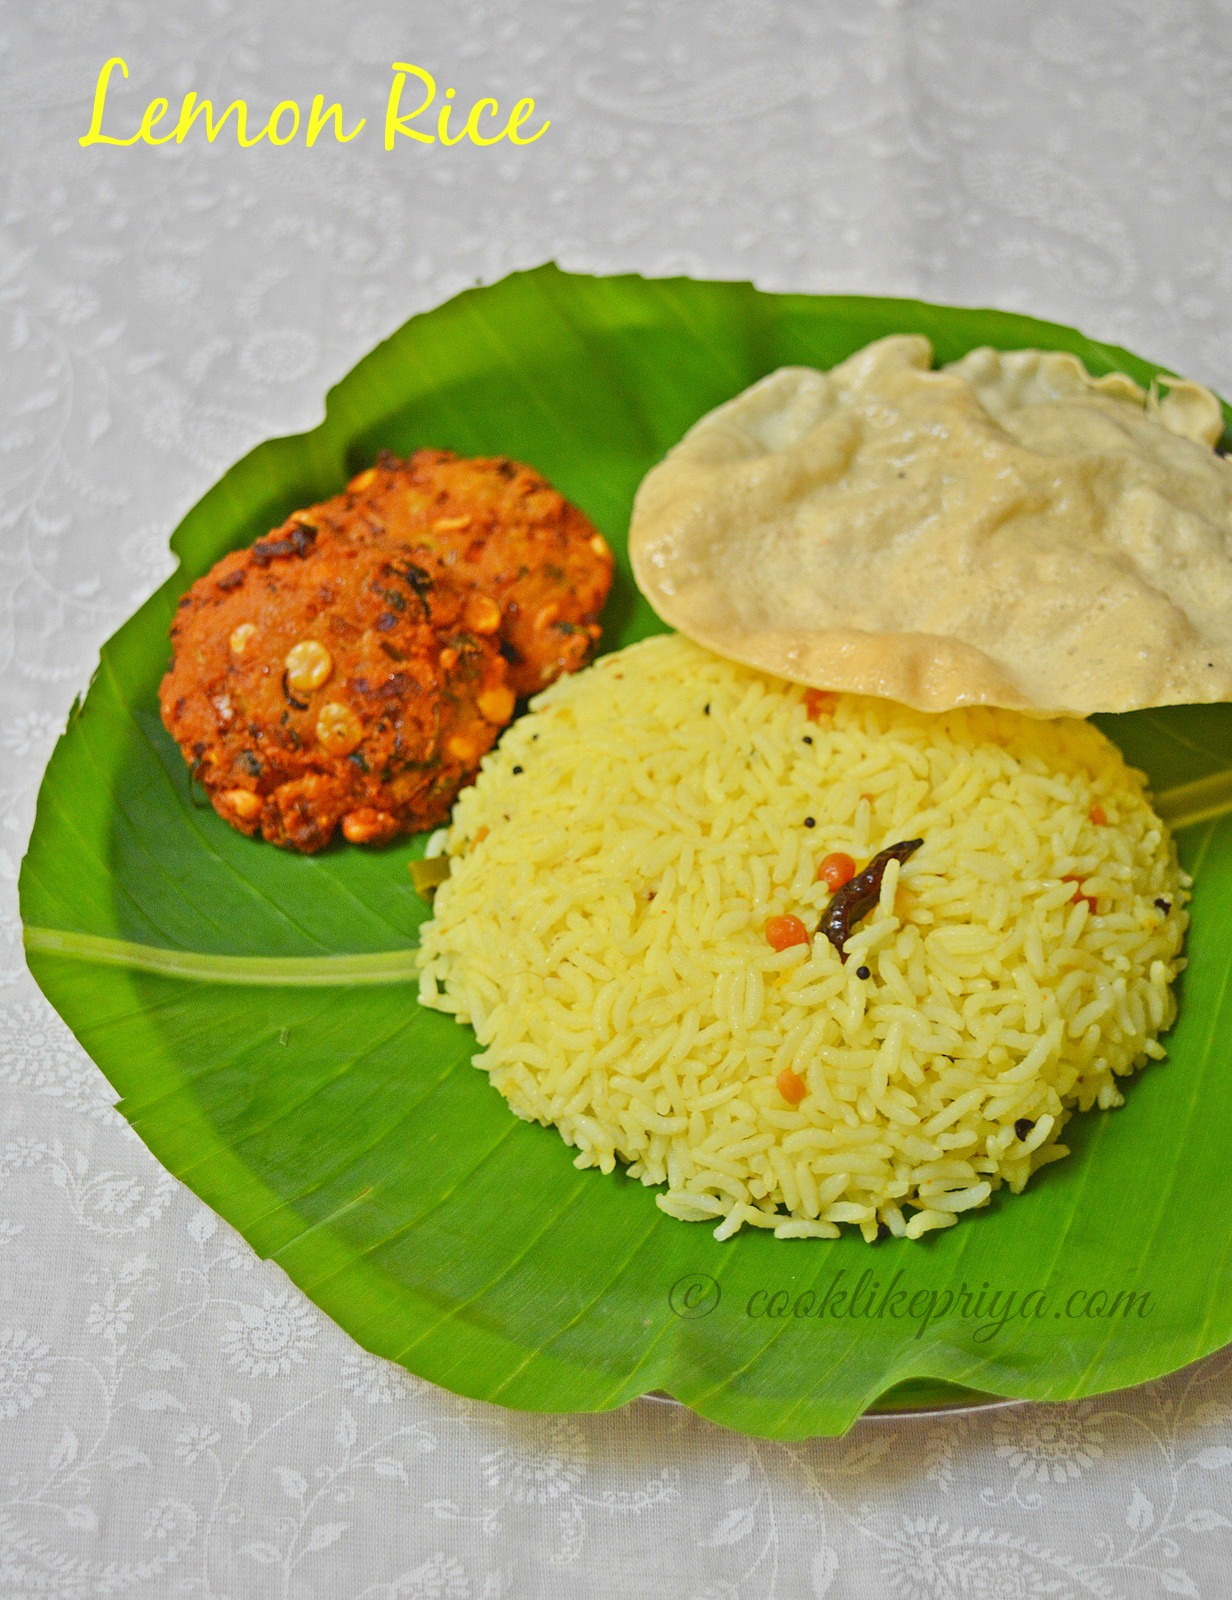 Lemon Rice | South Indian Lunch Box recipe